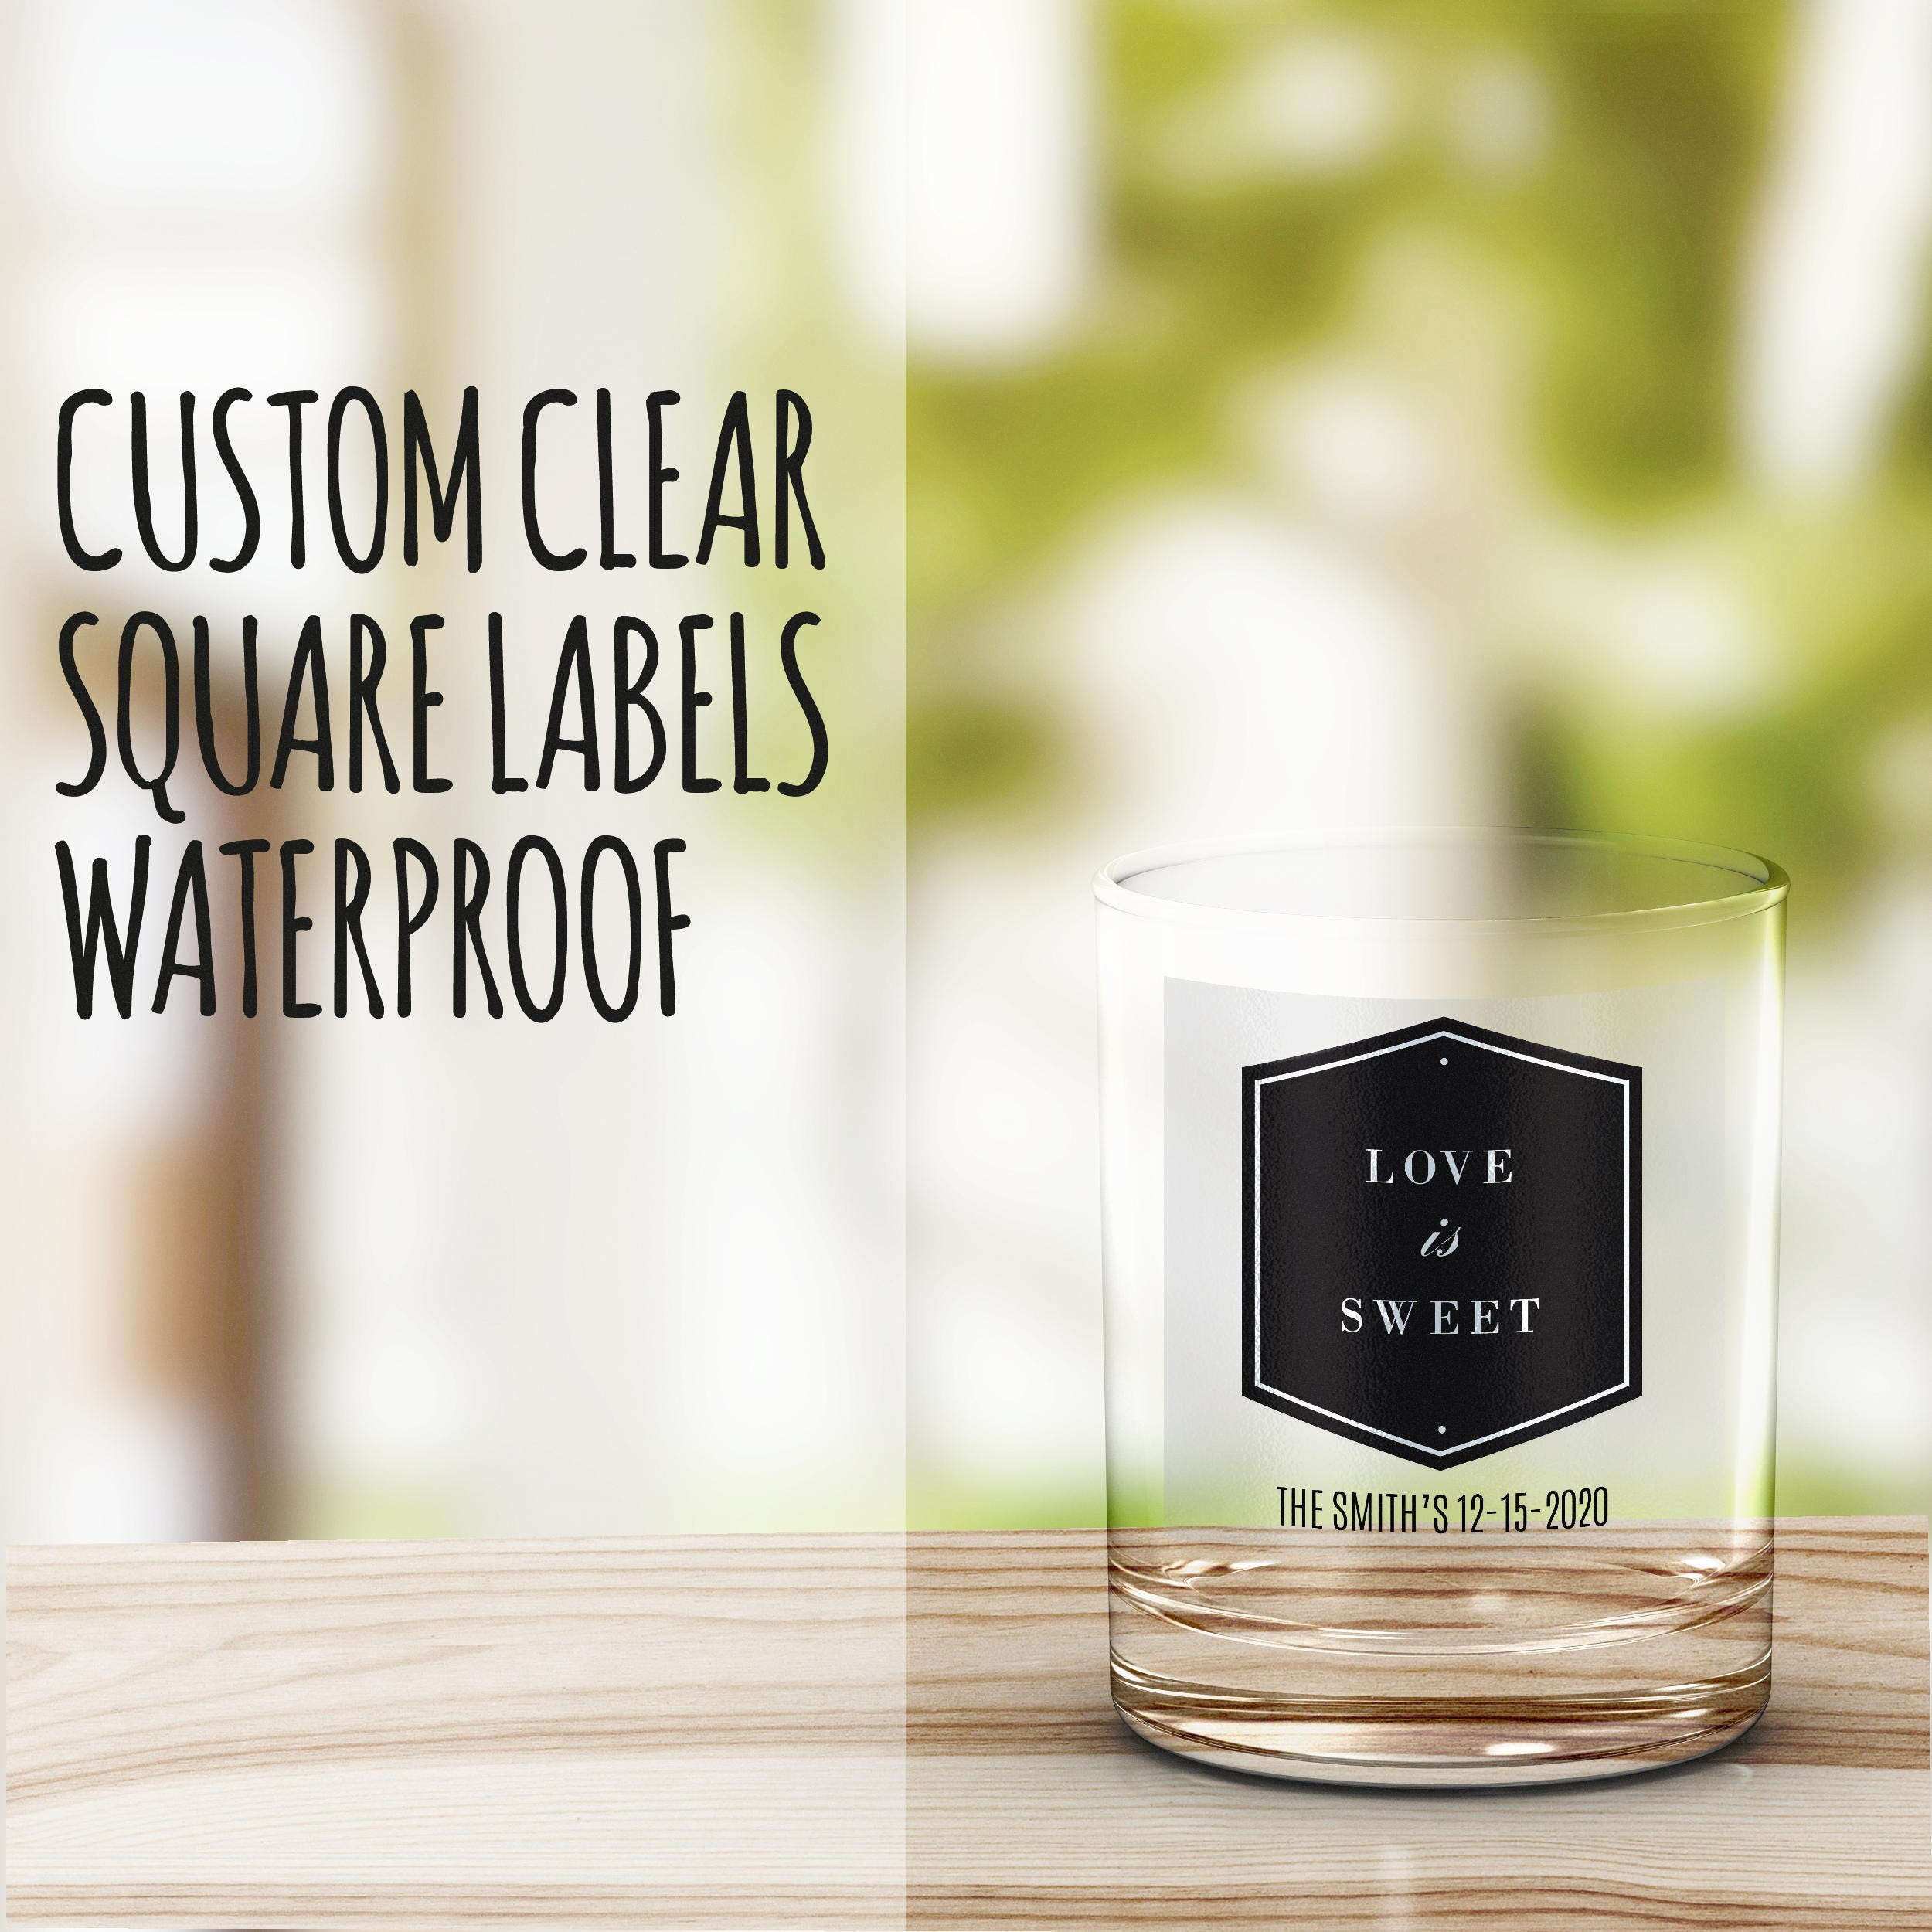 Personalized Shot Glasses For Clear Labels